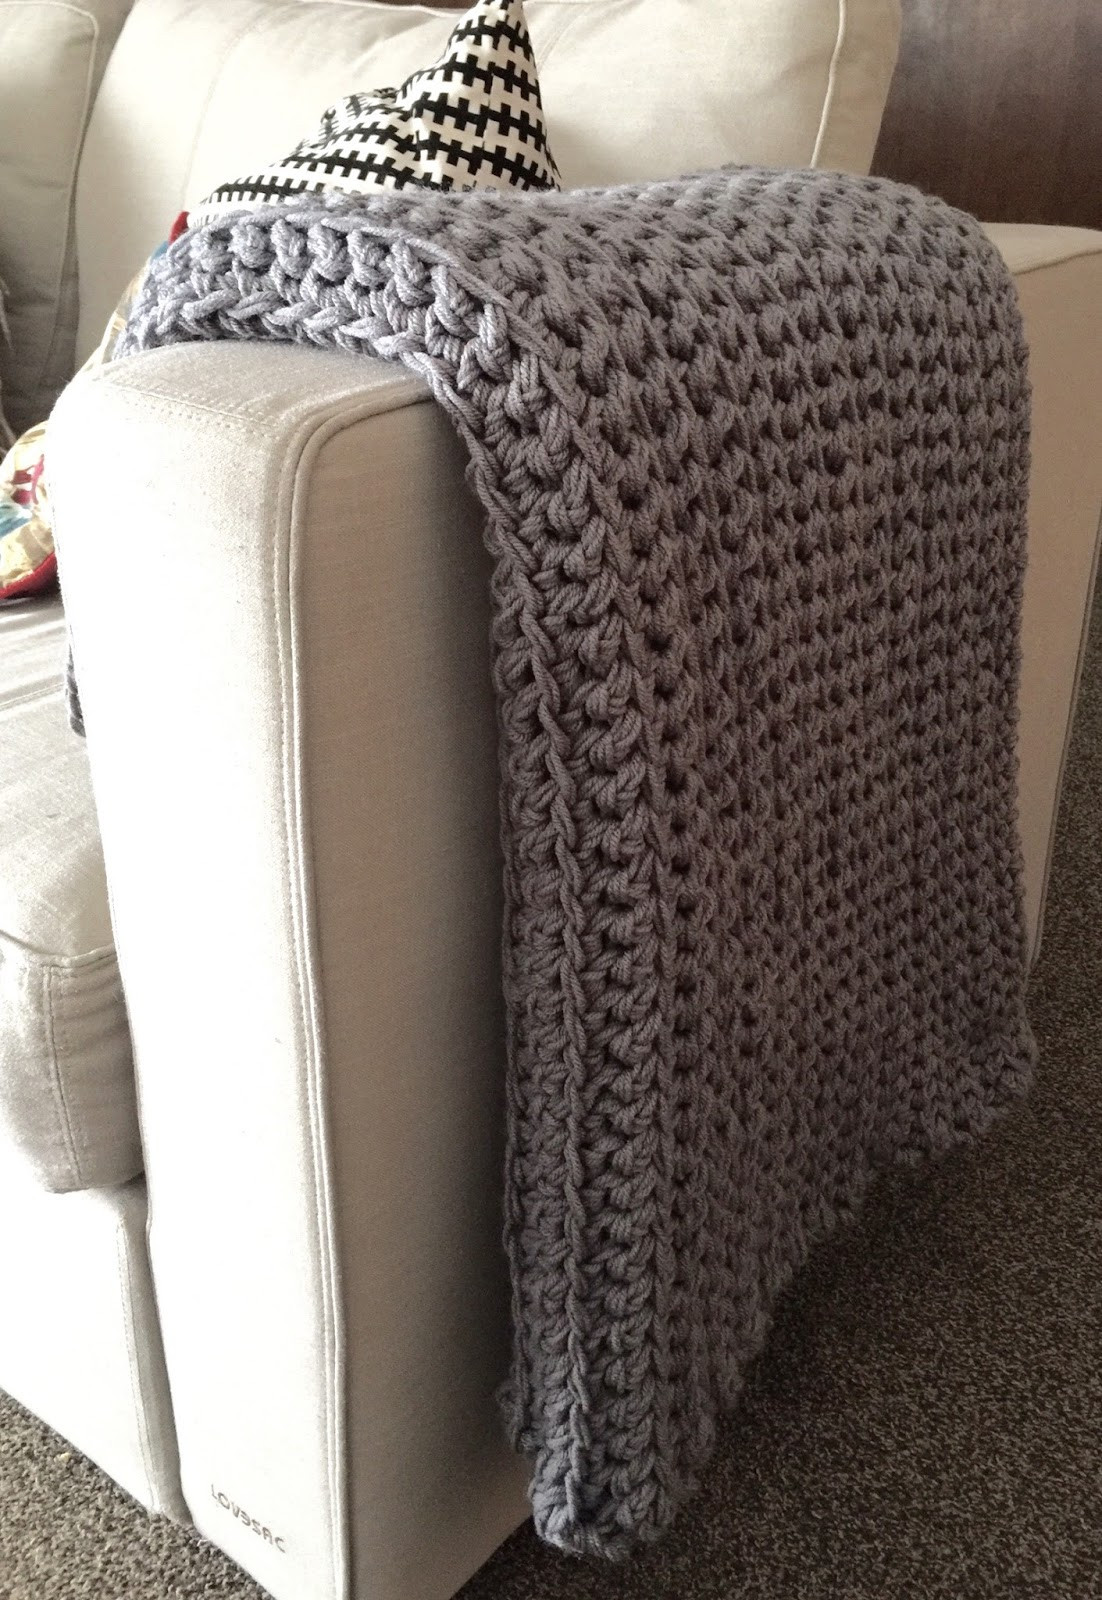 Easy Crochet Throw Patterns Luxury Easy Crochet Afghan Iknits Of New 47 Pictures Easy Crochet Throw Patterns